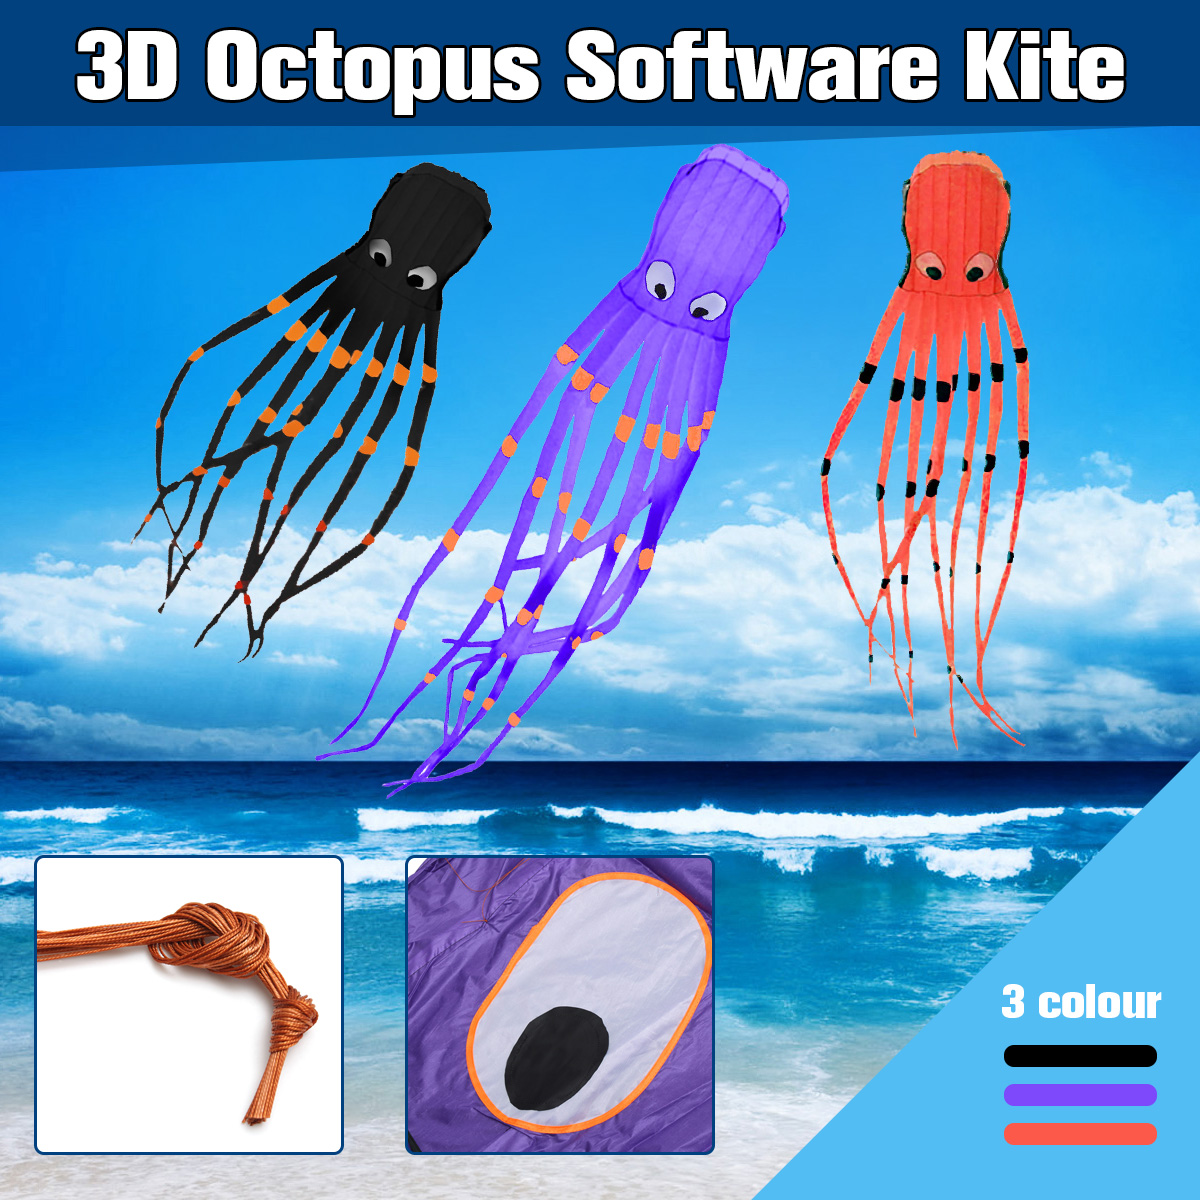 3D Octopus Nylon Kite Outdoor Sport 8M Soft Frameless Kite Flying Long Tails Perfect for Children Adults Beach Park Vacation